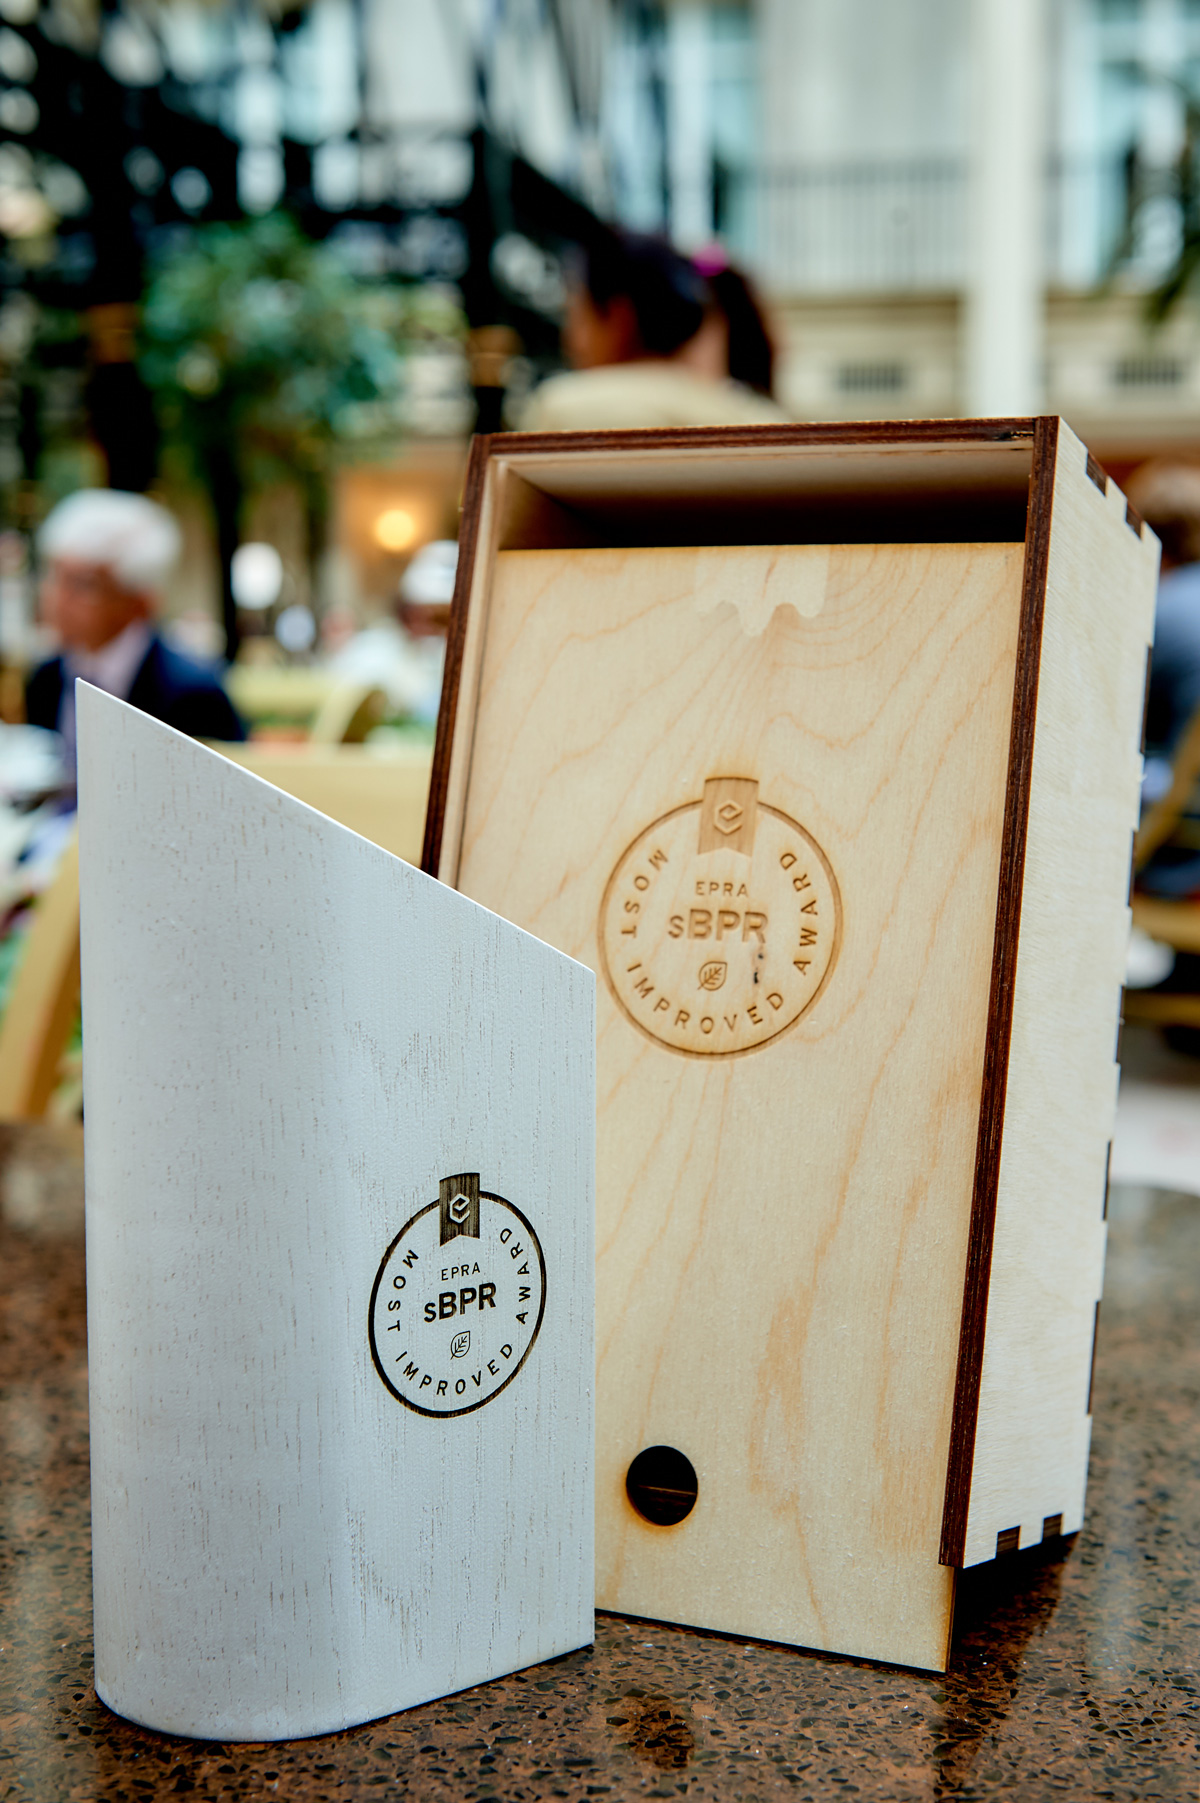 EPRA - trophys wood packaging lasercut by inkut lab